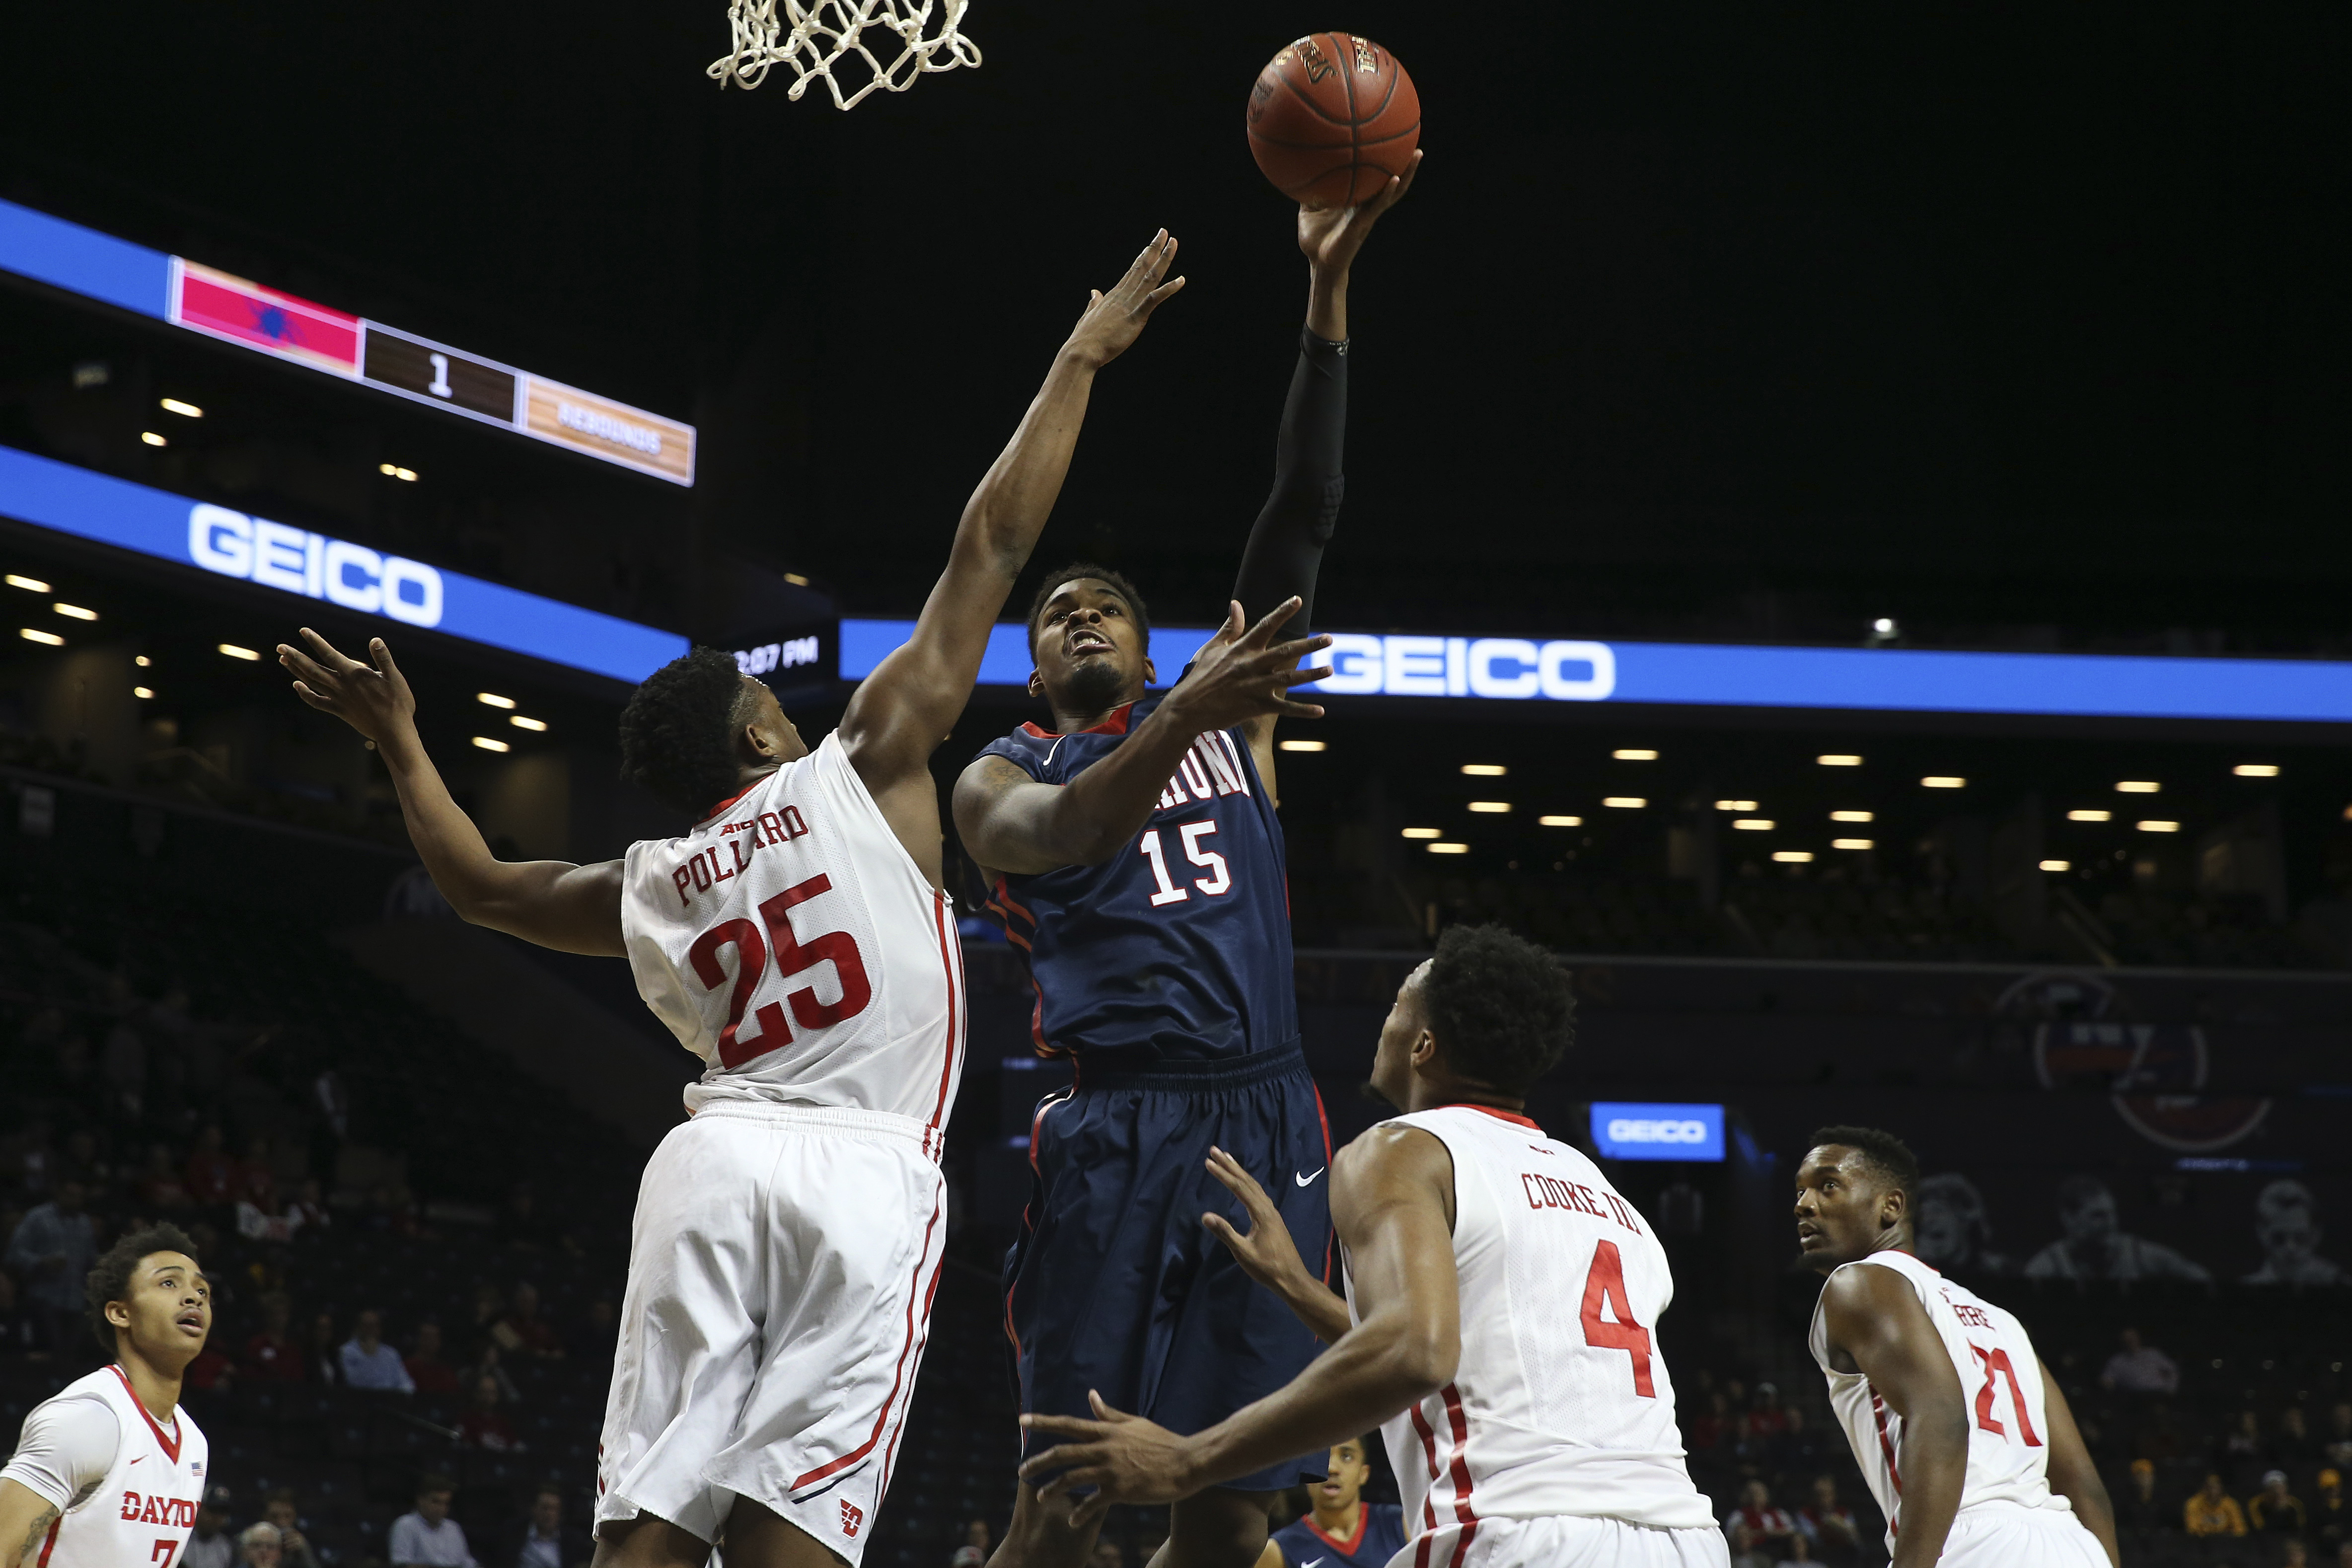 Richmond forward Terry Allen (15) goes to the basket against Dayton forward Kendall Pollard (25) during the first half of an NCAA college basketball game in the Atlantic 10 men's tournament, Friday, March 11, 2016, at New York. (AP Photo/Mary Altaffer)